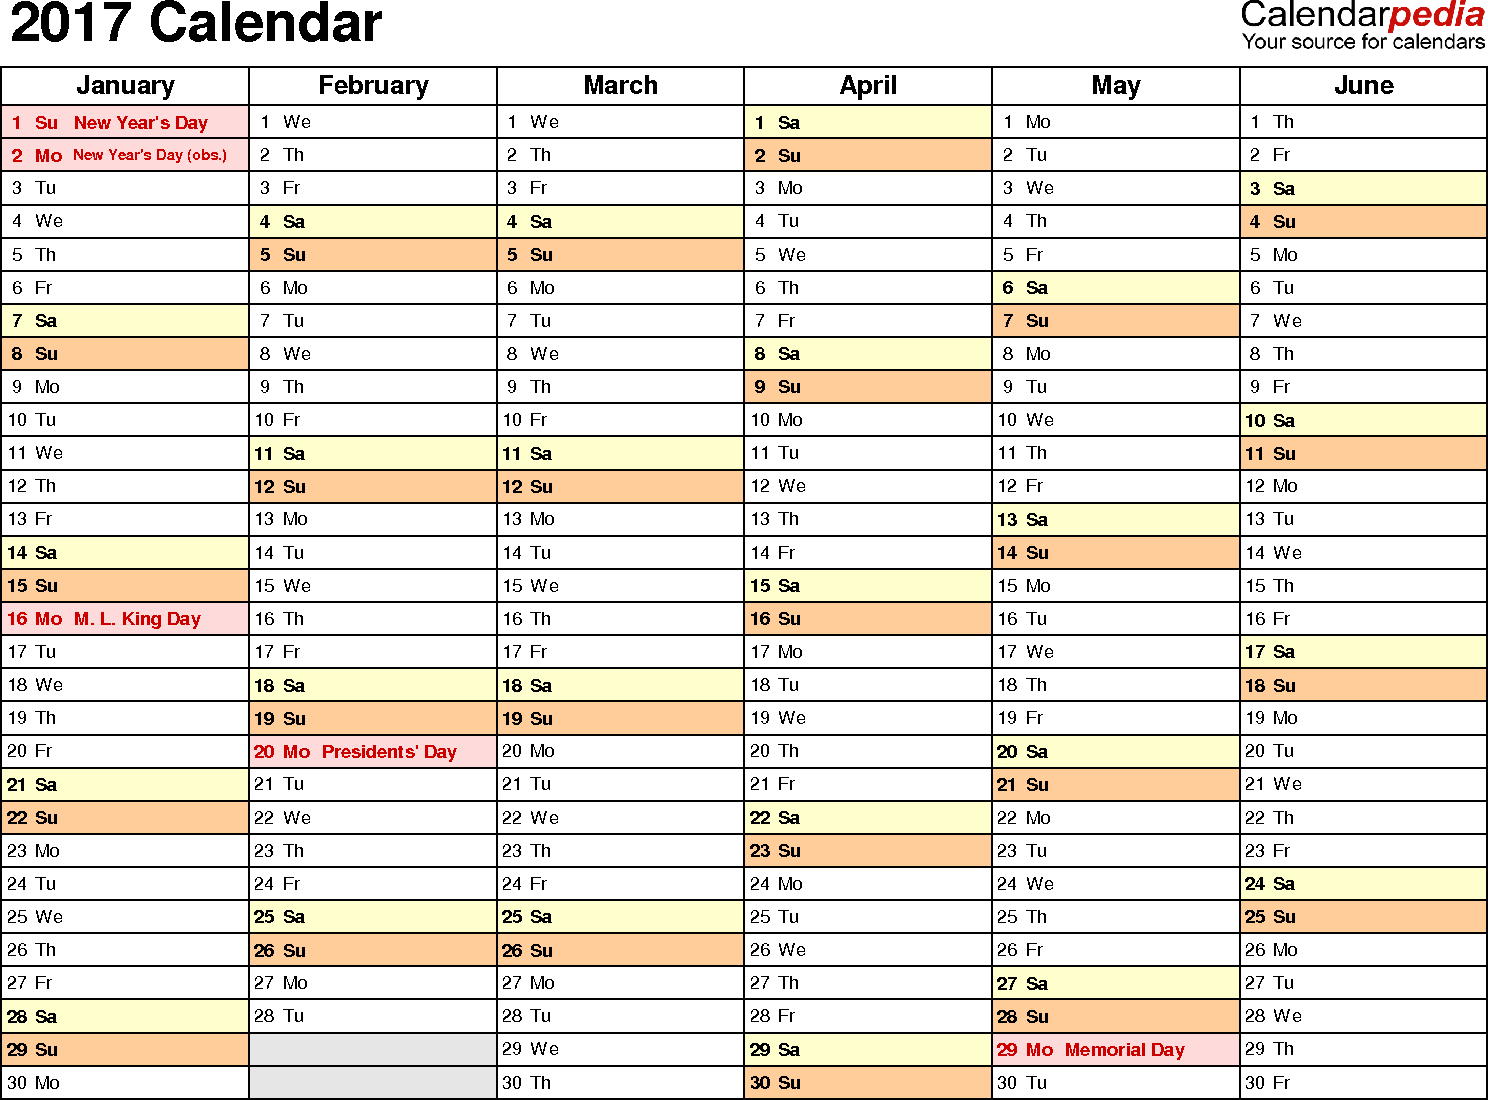 Ediblewildsus  Pleasing  Calendar  Download  Free Printable Excel Templates Xls With Goodlooking Template   Calendar For Excel Months Horizontally  Pages Landscape Orientation With Cute Arctan In Excel Also Excel Word Wrap In Addition Excel Time Format And Percentage Change In Excel As Well As How To Insert An Excel Spreadsheet Into Word Additionally Excel Furniture From Calendarpediacom With Ediblewildsus  Goodlooking  Calendar  Download  Free Printable Excel Templates Xls With Cute Template   Calendar For Excel Months Horizontally  Pages Landscape Orientation And Pleasing Arctan In Excel Also Excel Word Wrap In Addition Excel Time Format From Calendarpediacom